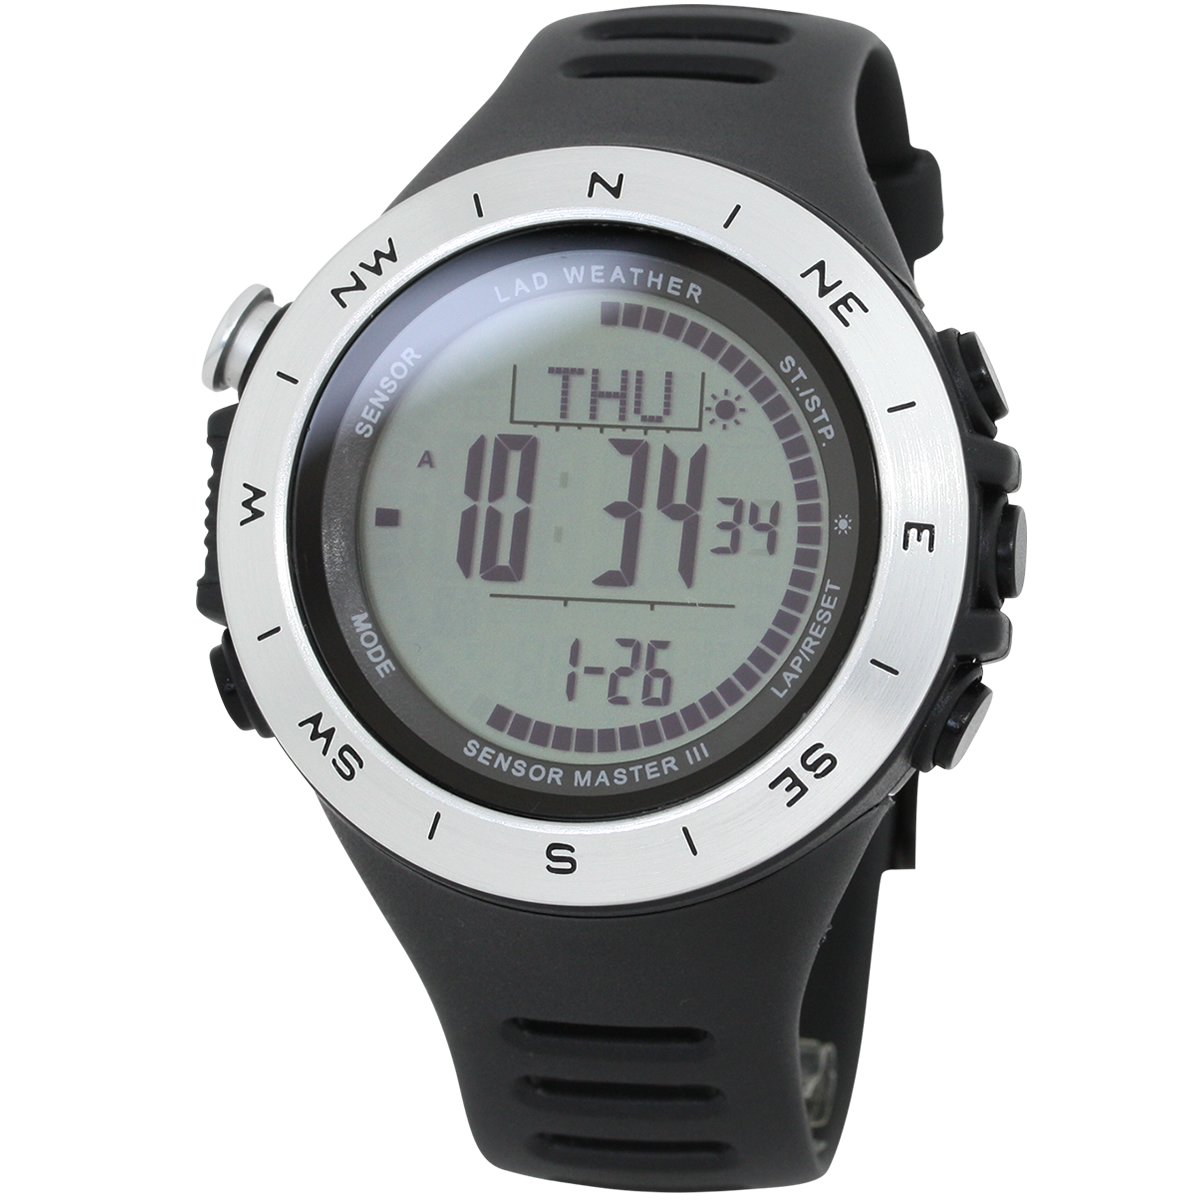 [LAD WEATHER] Swiss sensor Altimeter Barometer Digital Compass Weather Forecast Step/ Mountain data Watches by LAD WEATHER